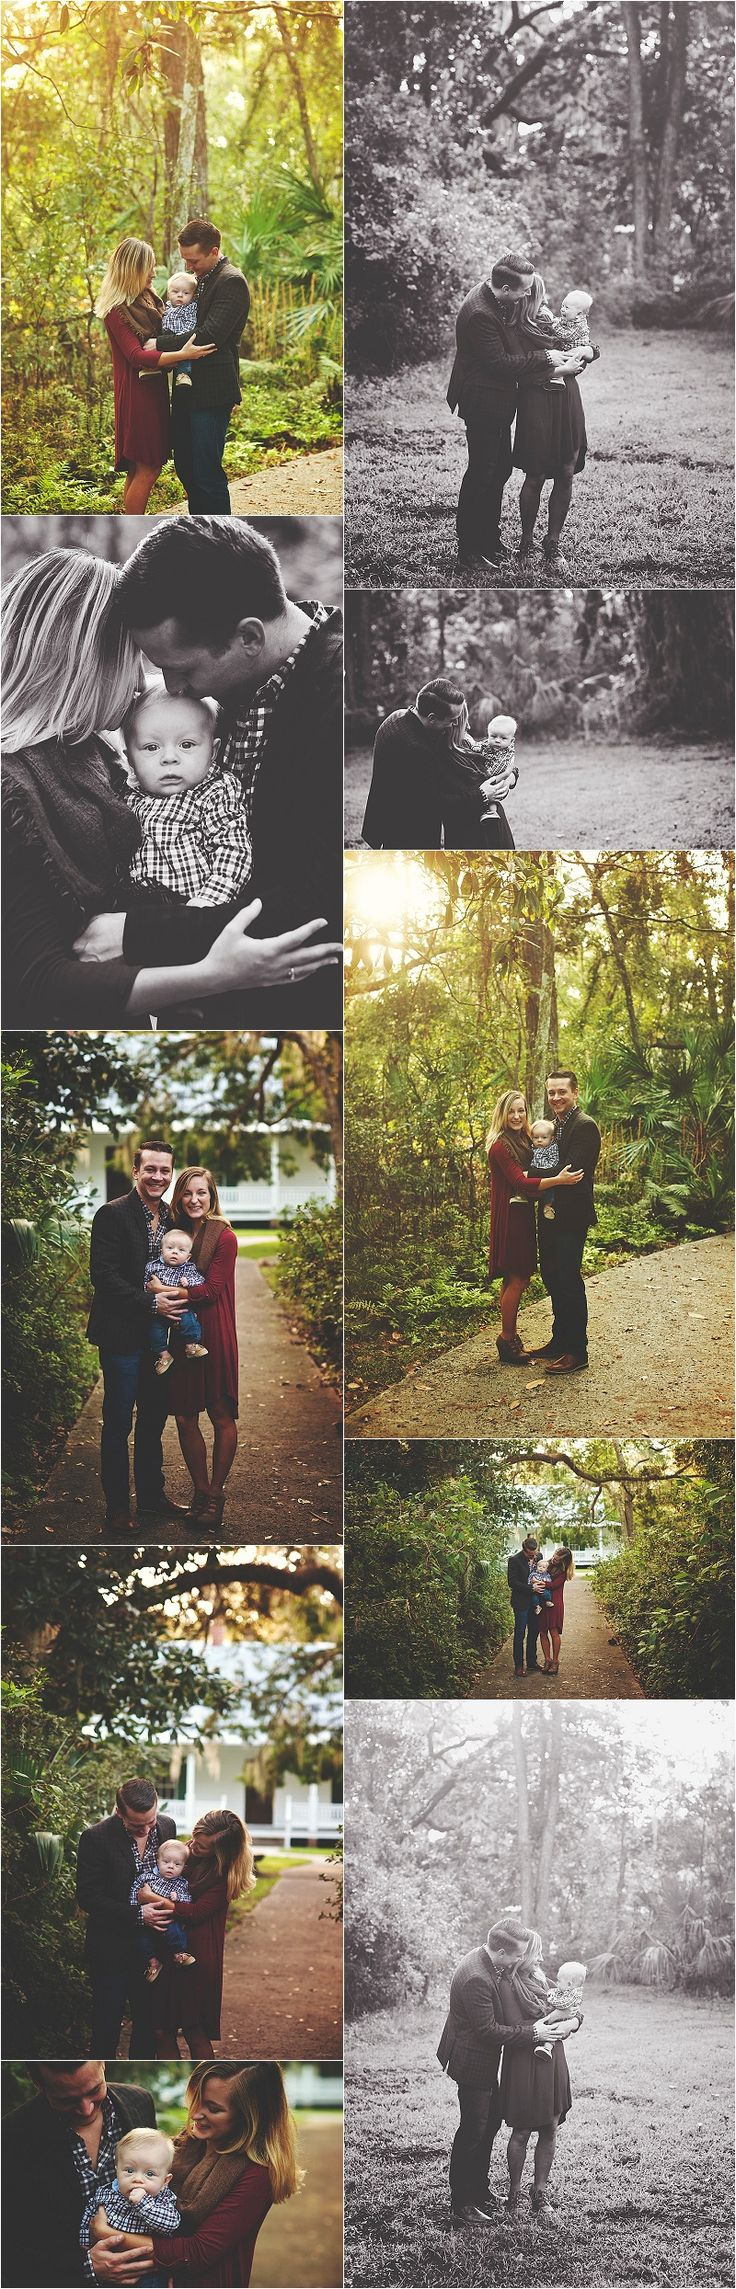 Fall Family Portrait ideas by Melody Coarsey Photography. Click the image to see more.